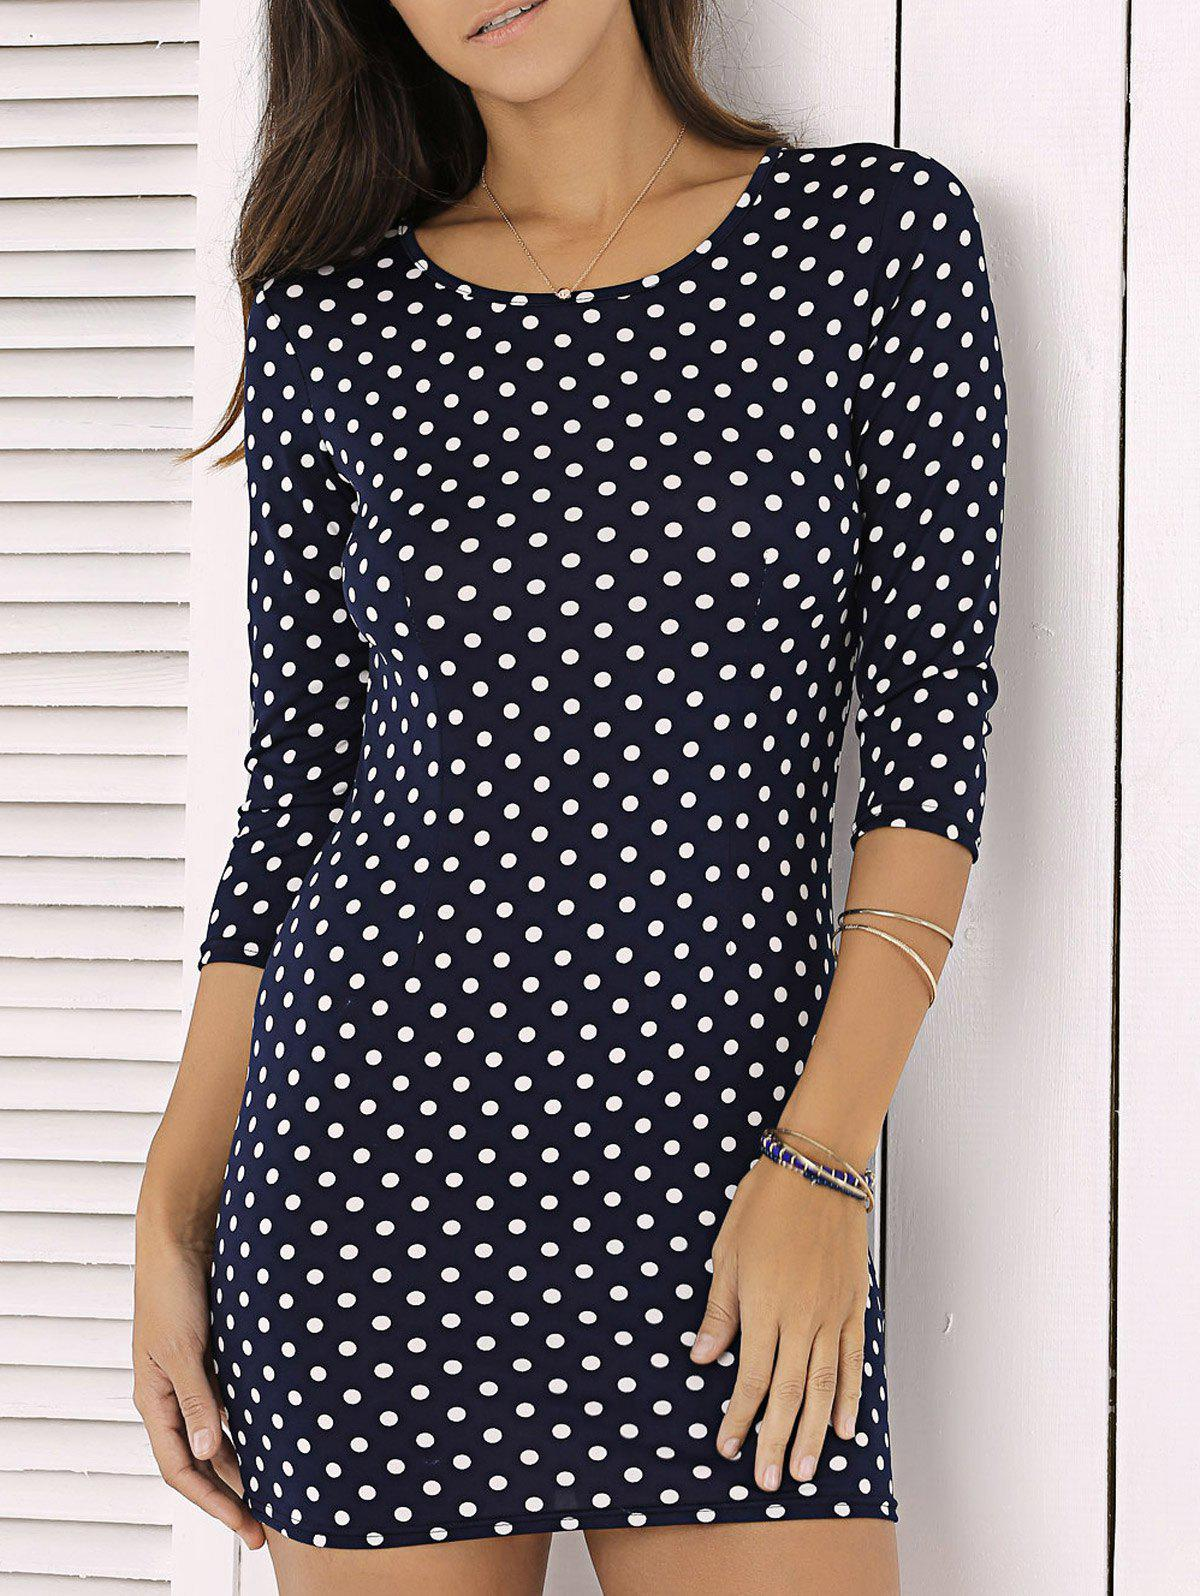 Fashion Polka Dot Print 3/4 Sleeve Sheath Mini Dress - DEEP BLUE 2XL